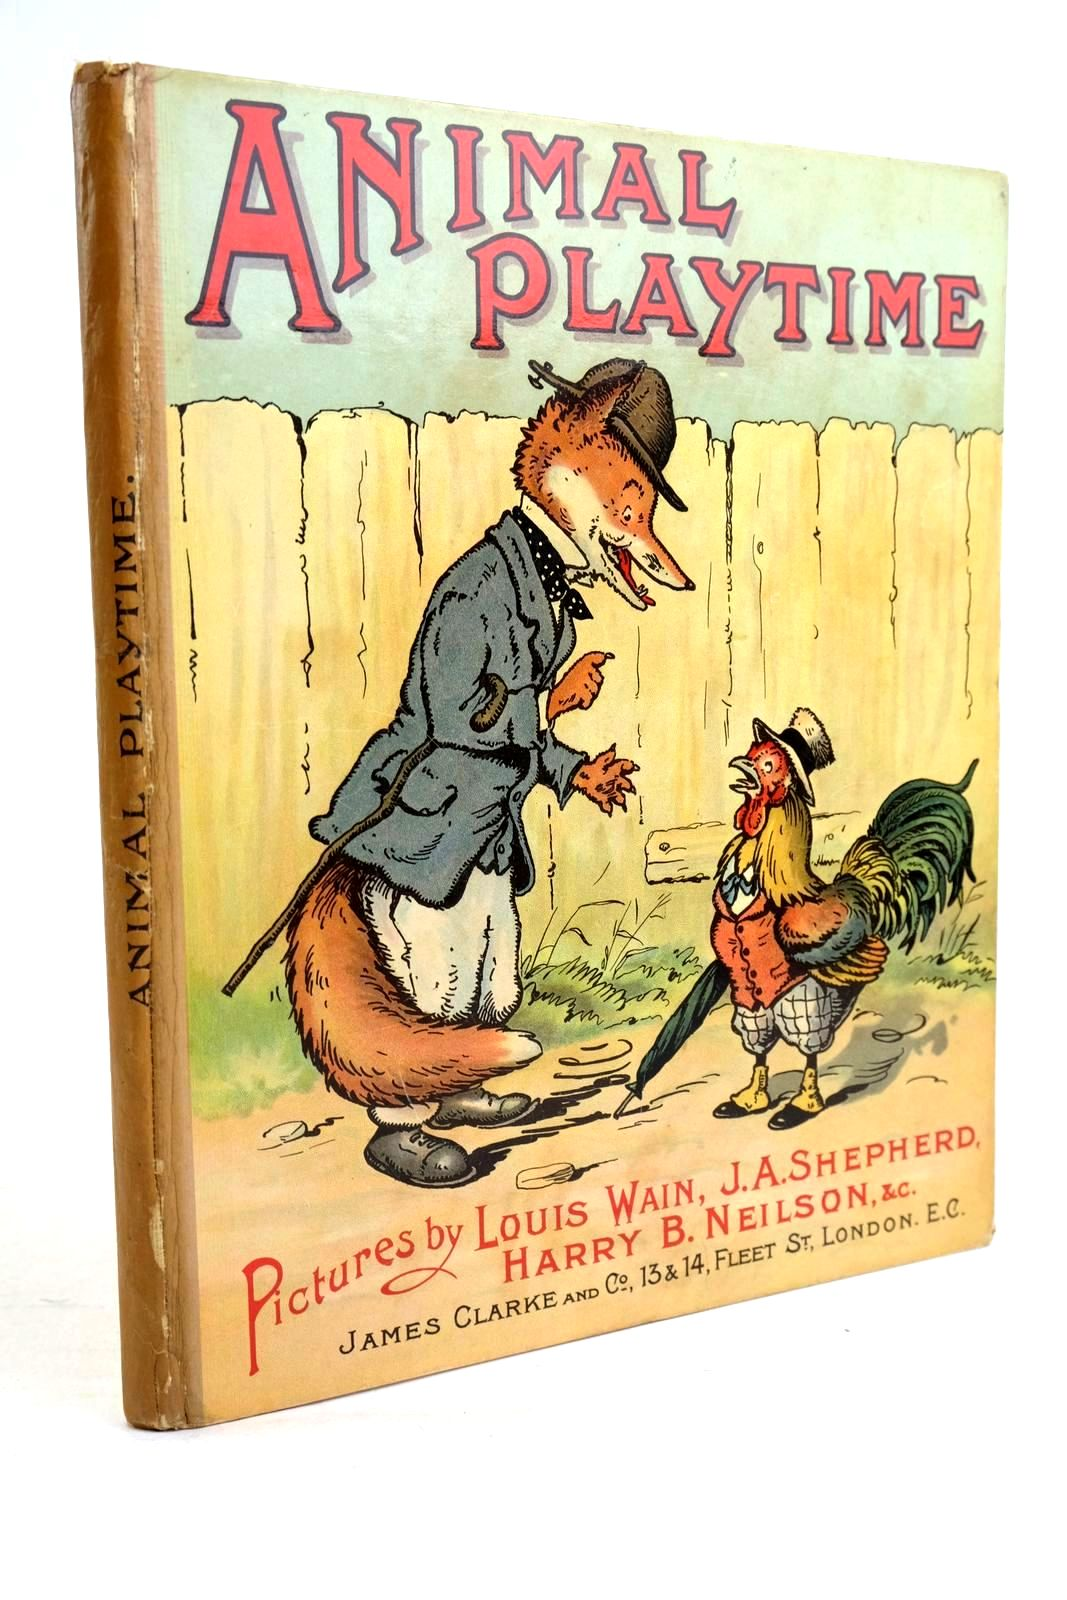 Photo of ANIMAL PLAYTIME illustrated by Wain, Louis Neilson, Harry B. Shepherd, J.A. et al., published by James Clarke & Co. (STOCK CODE: 1320518)  for sale by Stella & Rose's Books